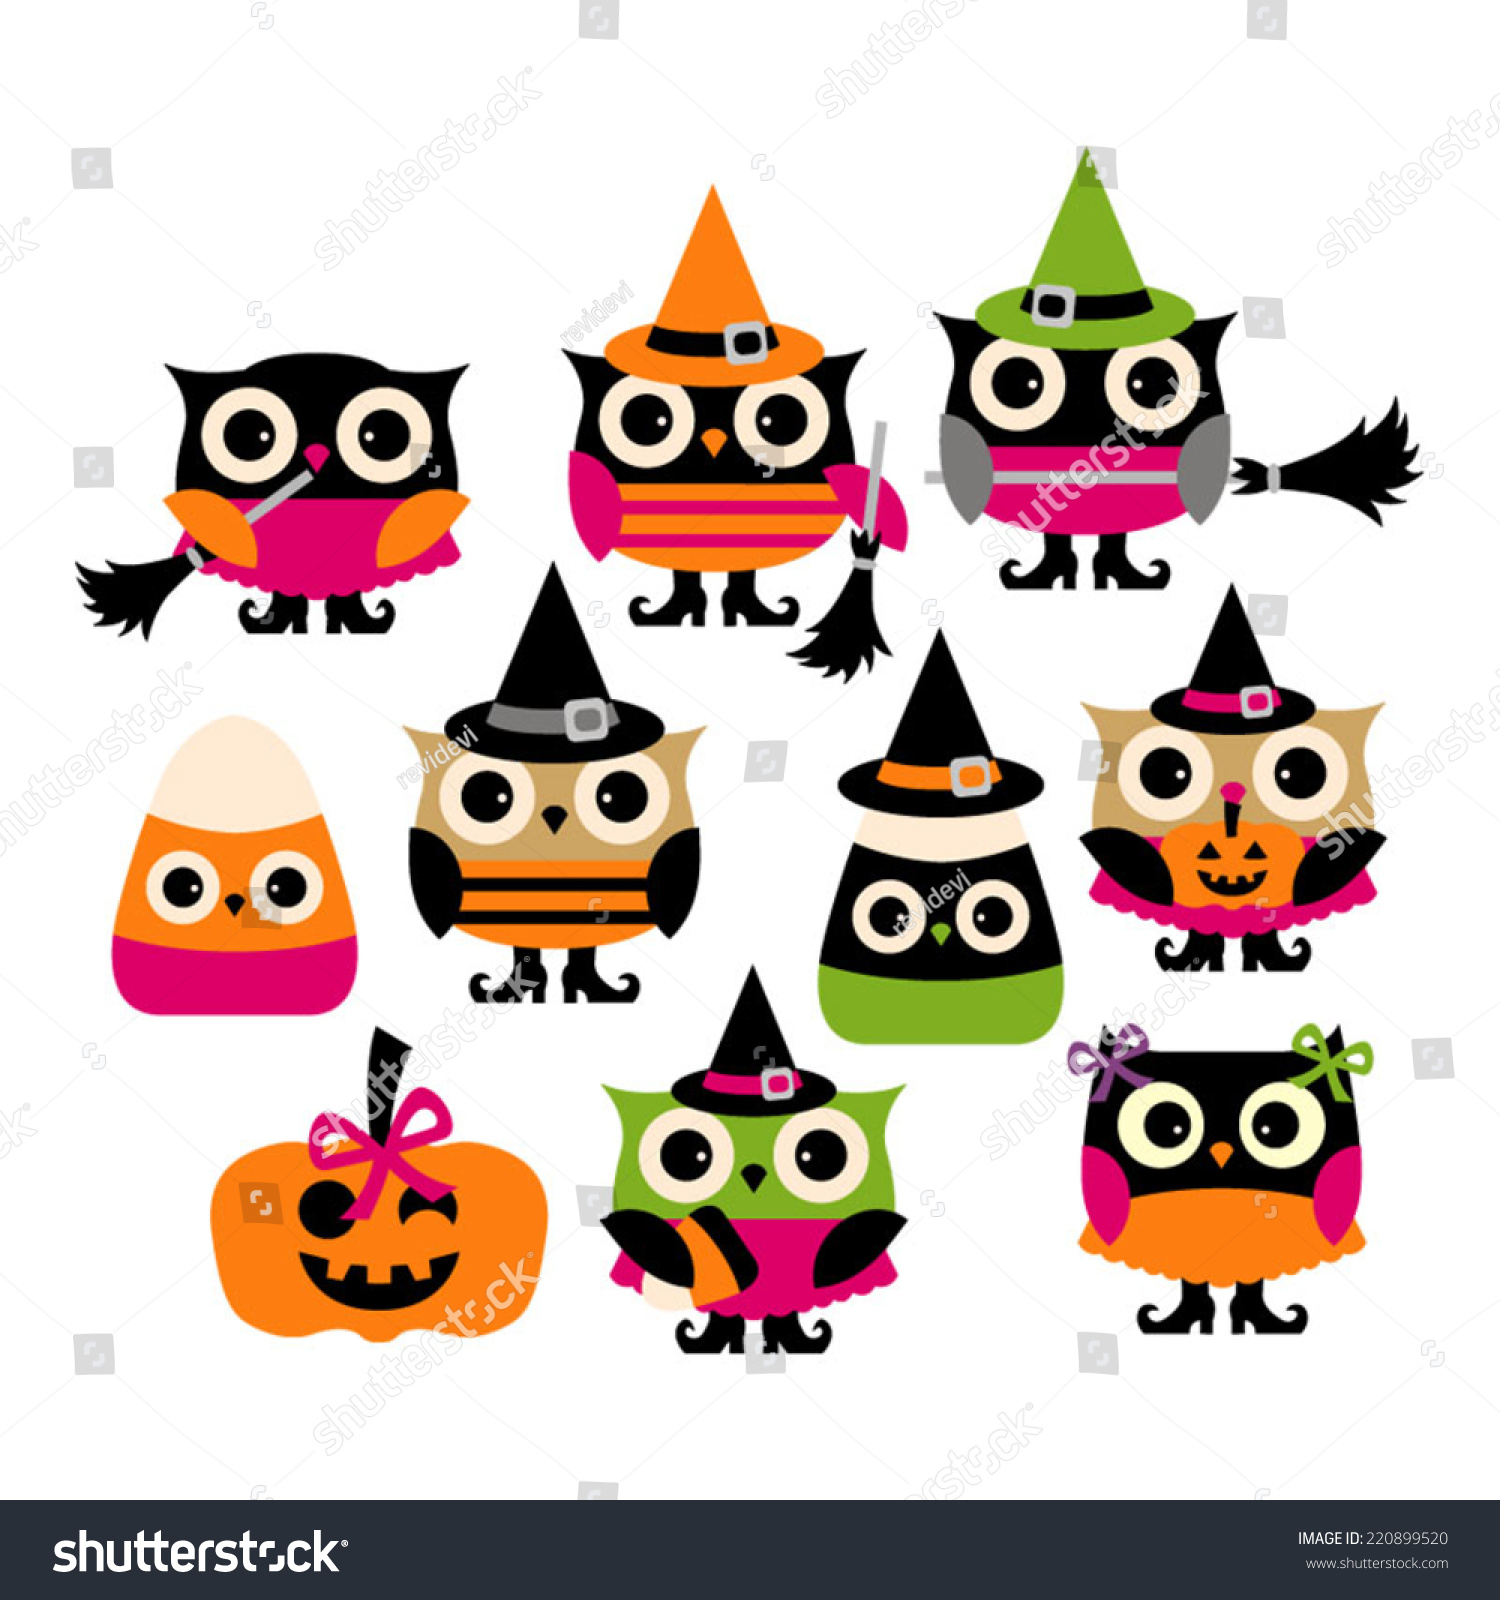 Clip Art Halloween Owl Clip Art cute halloween owl vector clip art great for any design projects 220899520 shutterstock